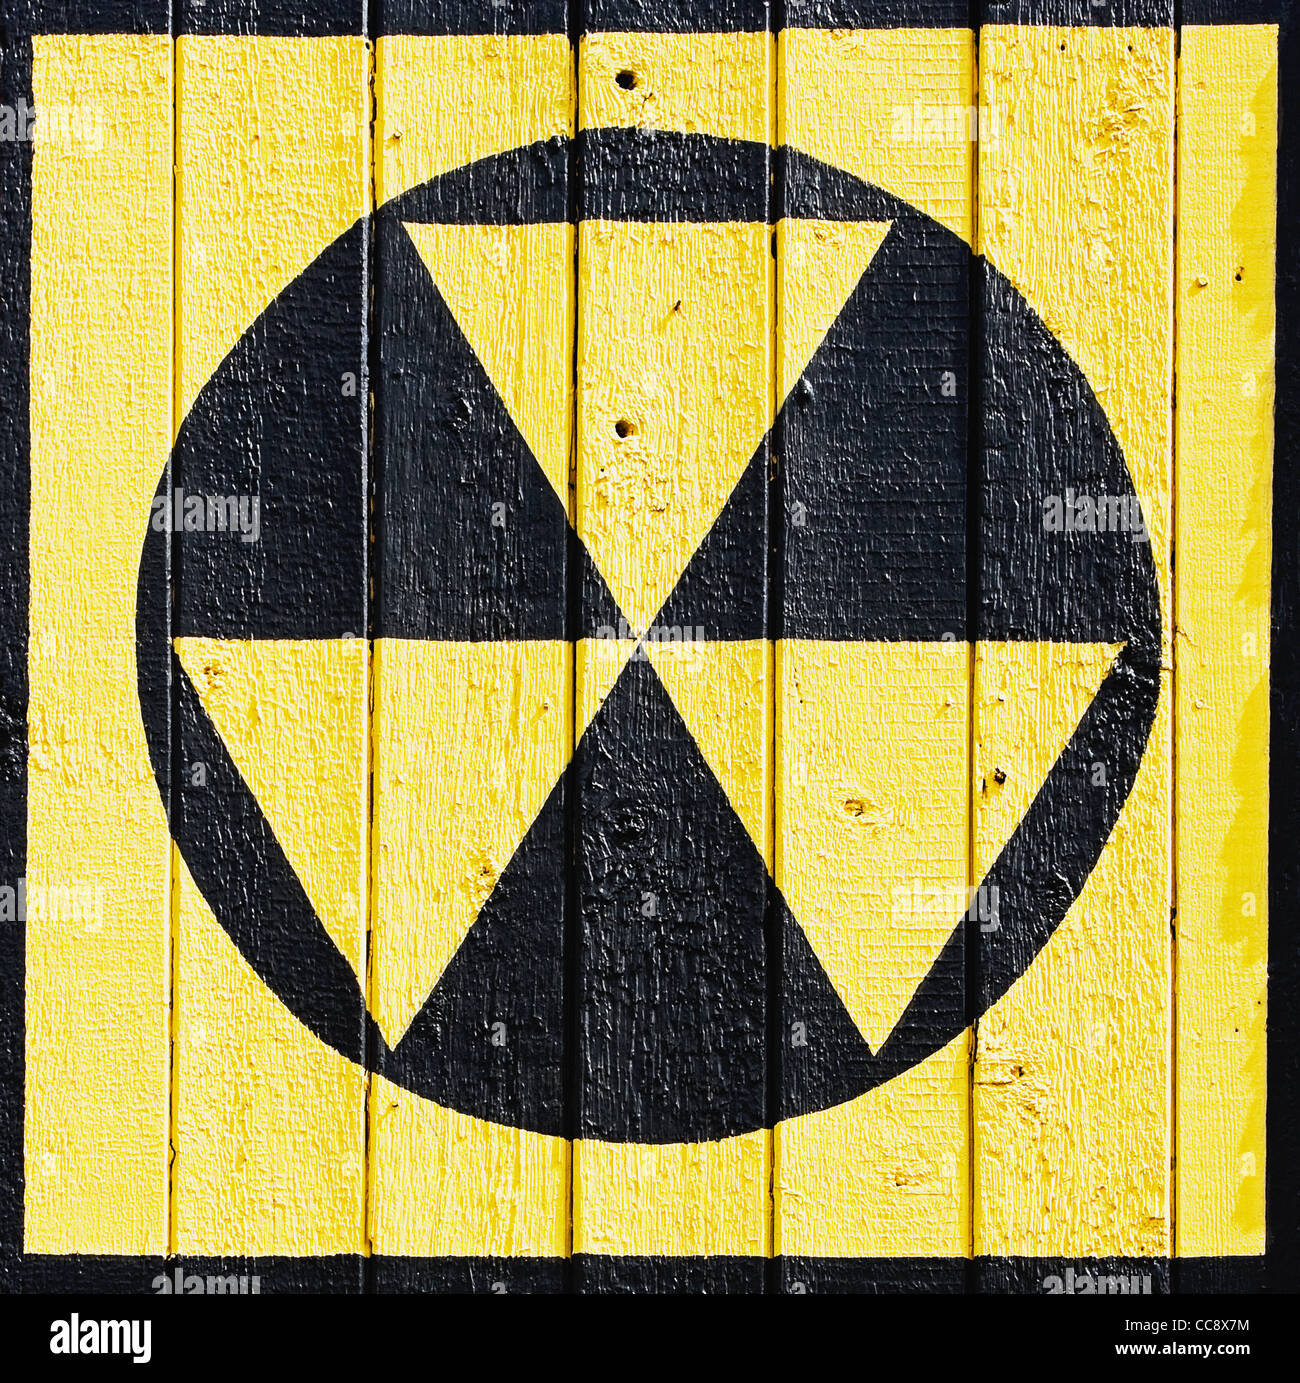 radiation symbol painted on wooden wall - Stock Image